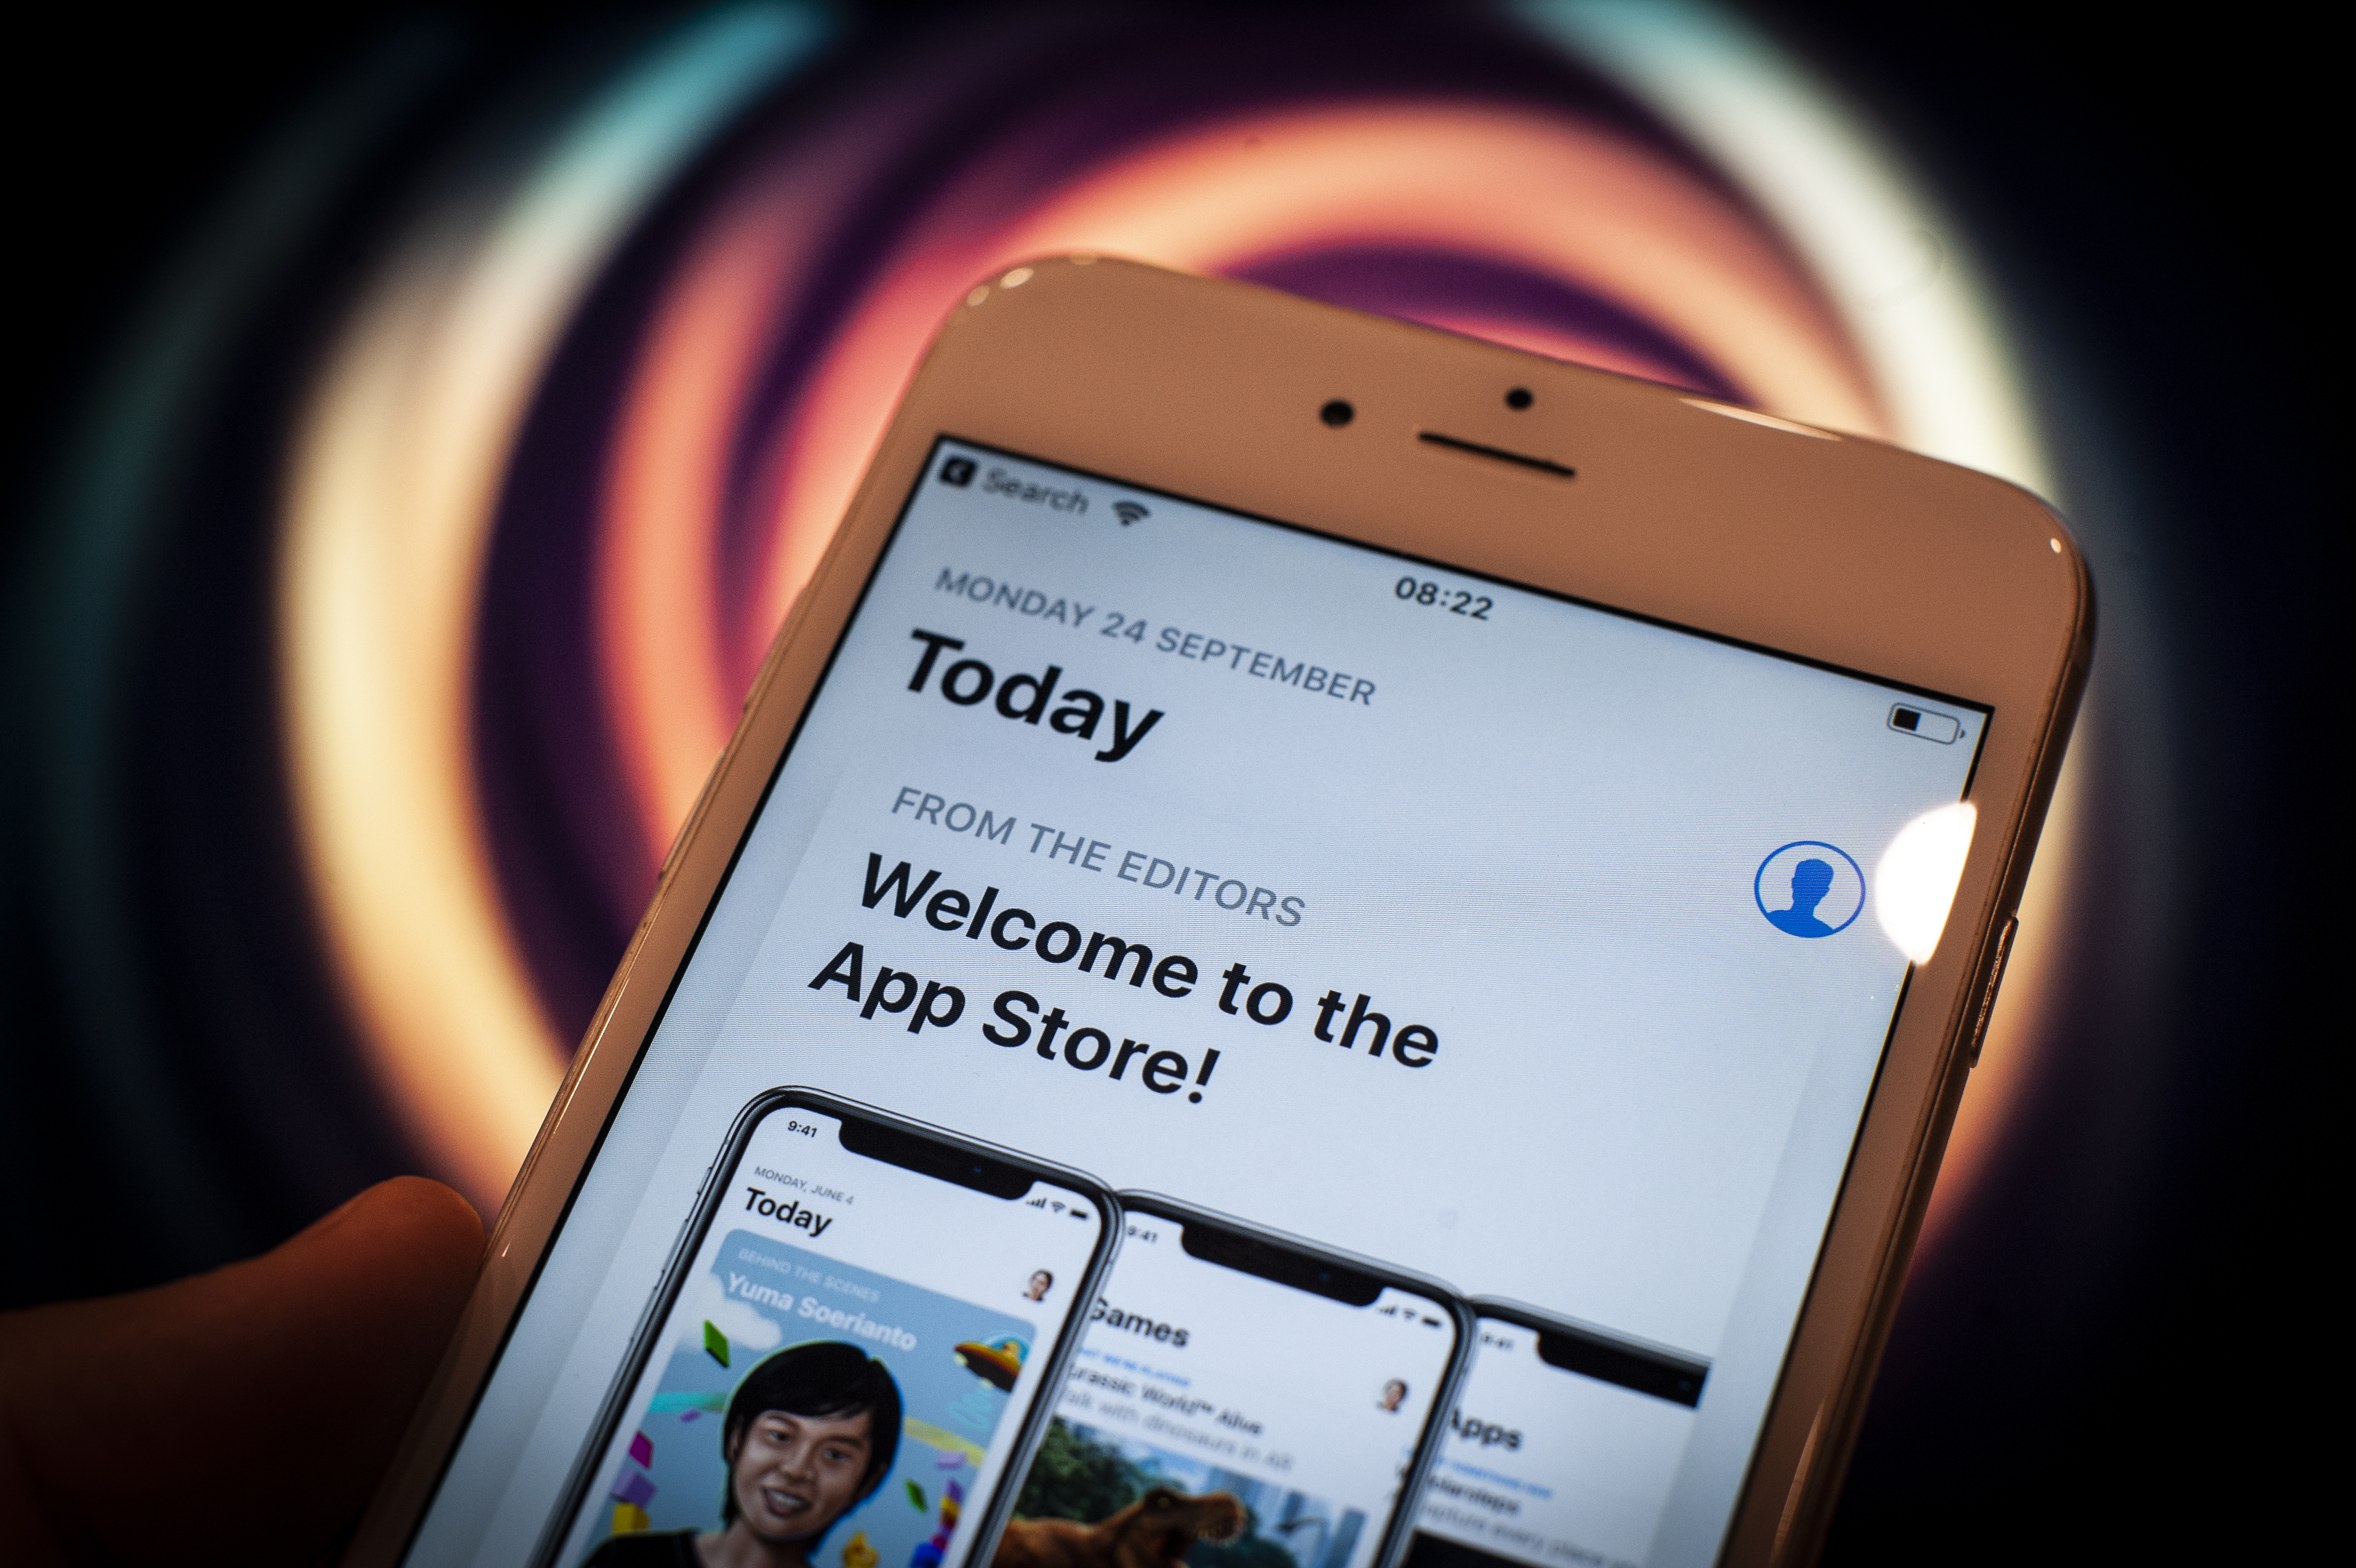 The App Store is seen running on an Apple iPhone in this photo illustration on September 24, 2018.